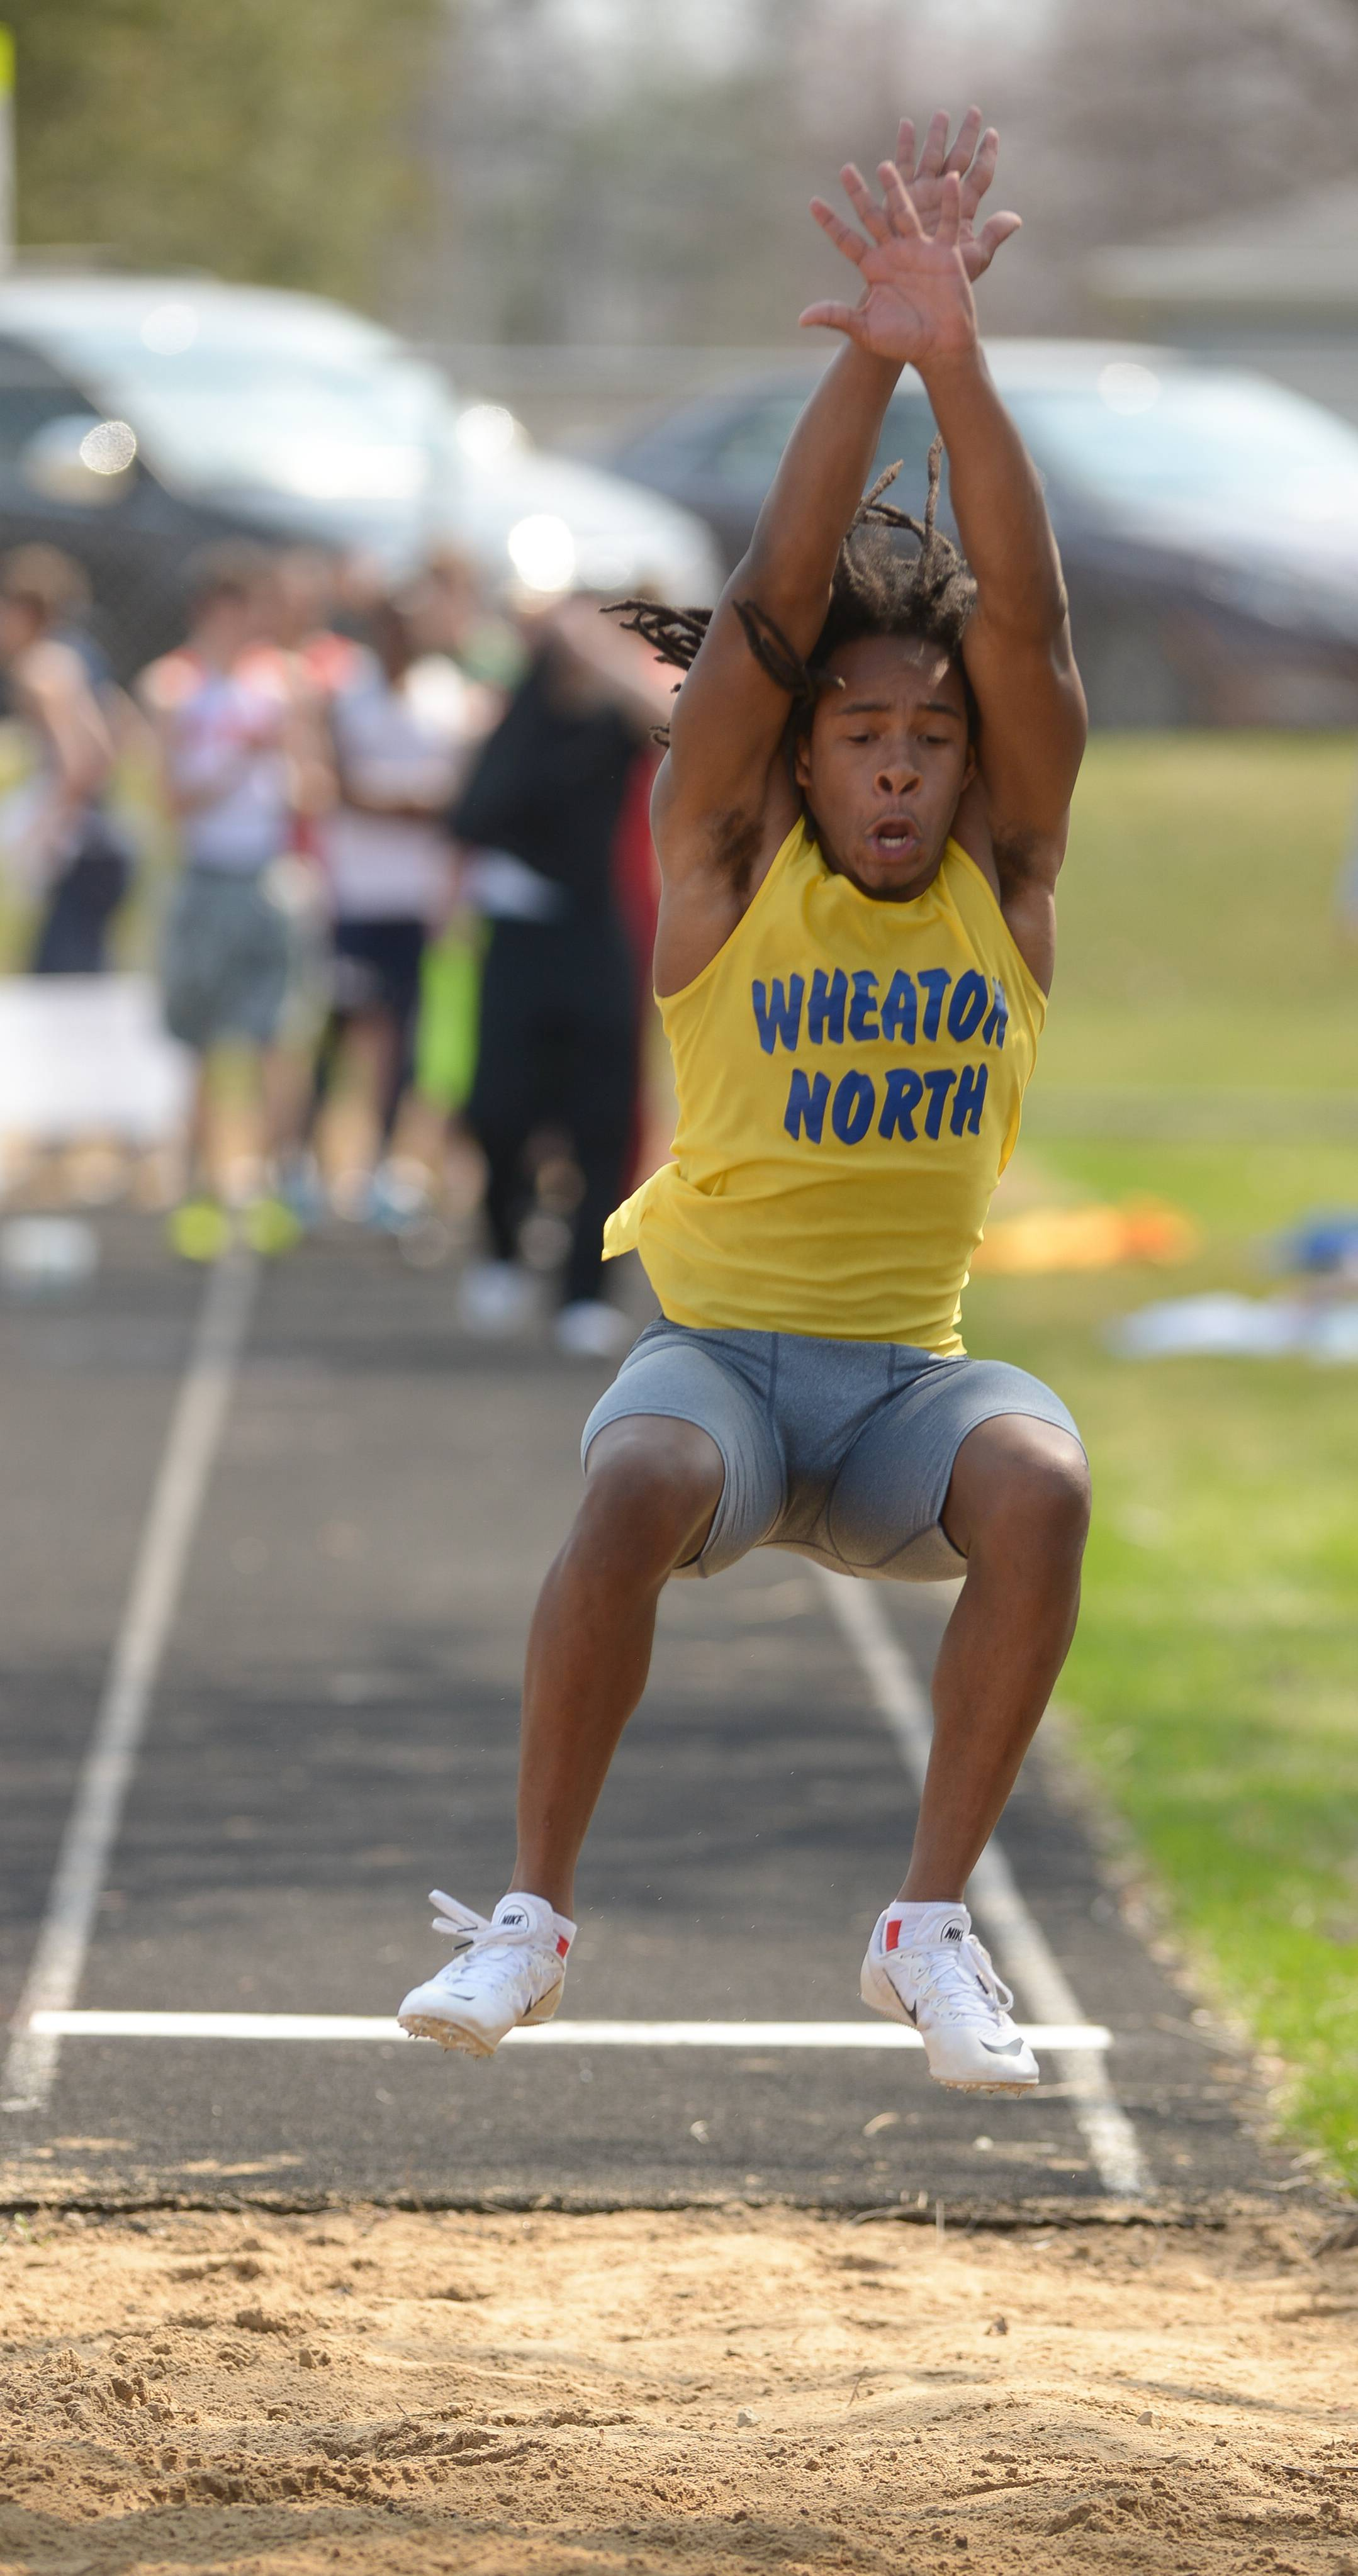 Wheaton North's Chico Jackson competes in the Long Jump during Wheaton North's 29th Annual Best 4 Invite.